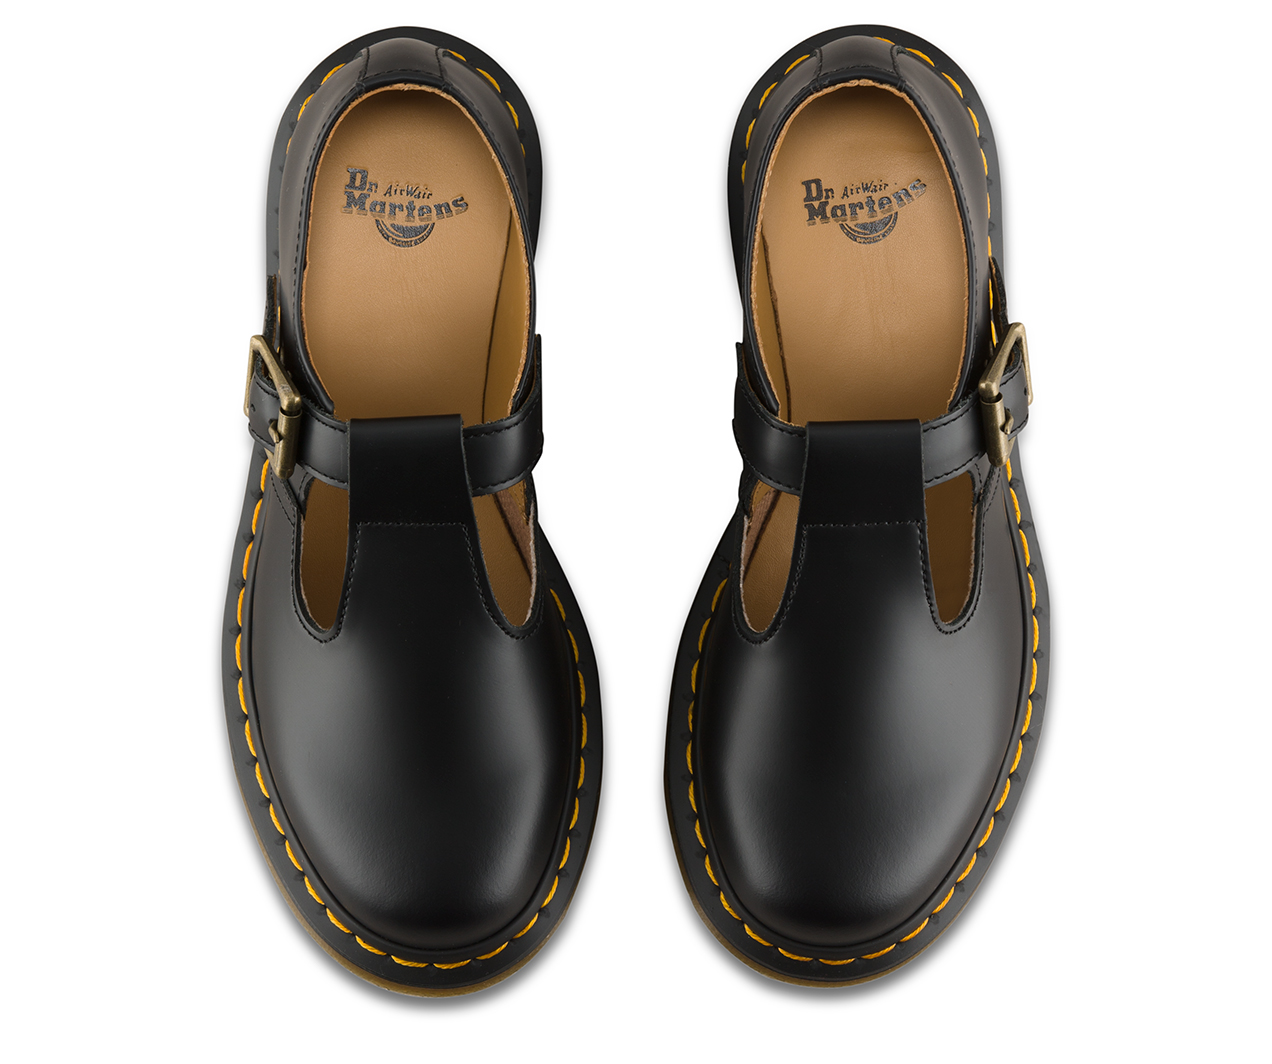 Dr Martens Girls T Bar Shoe Black Size